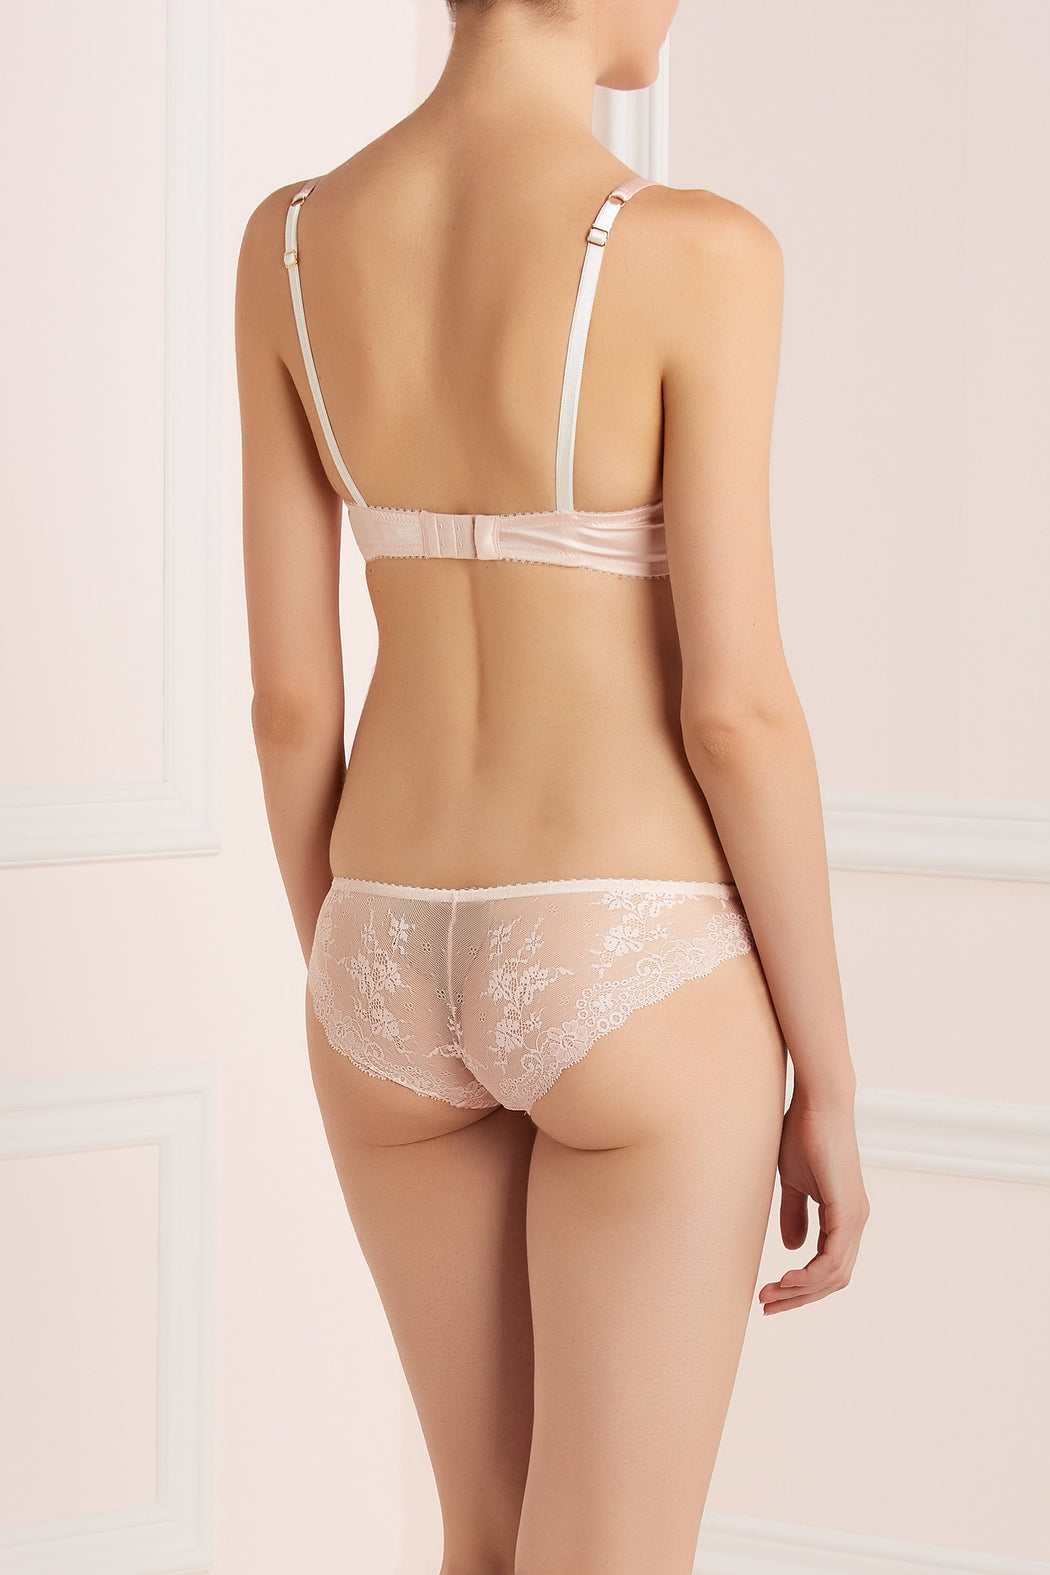 Silk and Lace Tea Rose Lace back knicker by Lucile workingirls lingerie